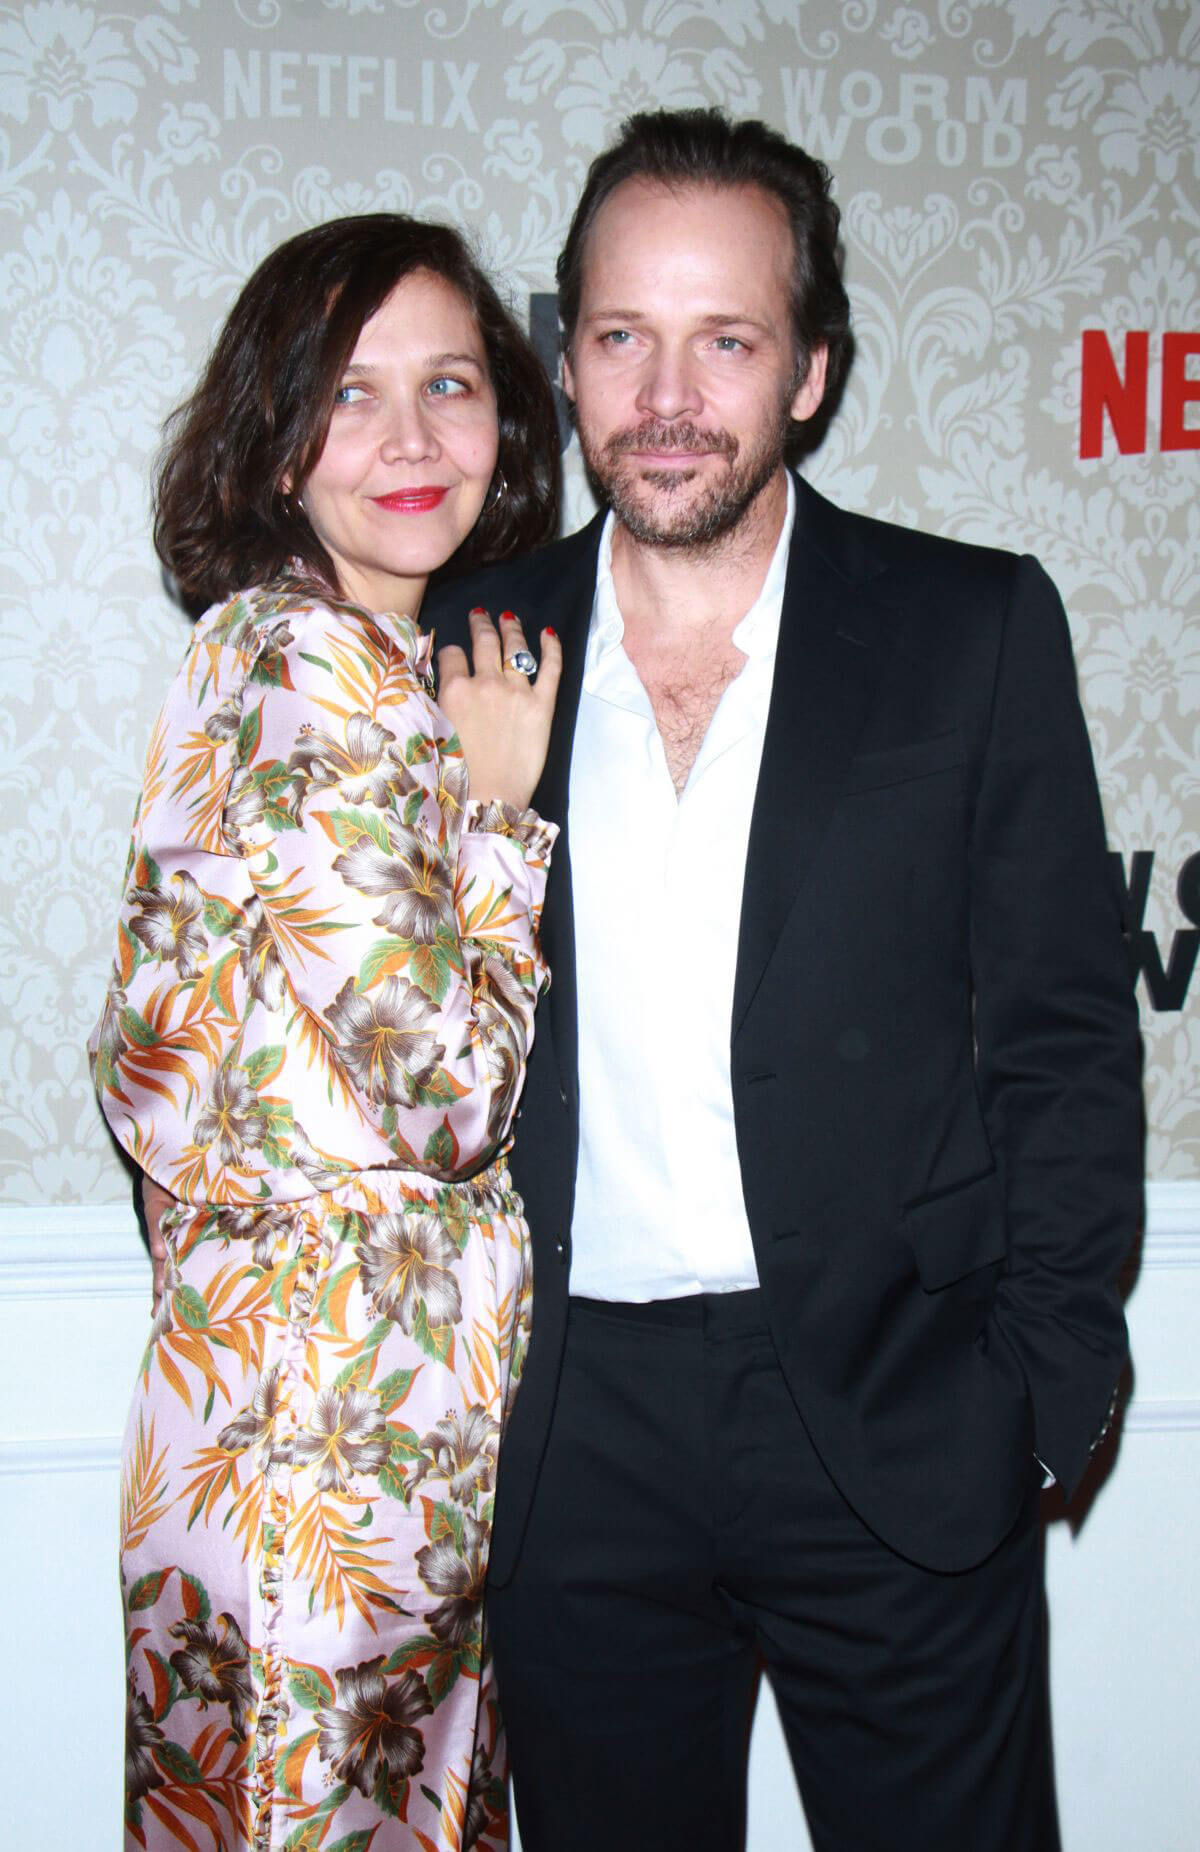 Maggie Gyllenhaal Stills at Wormwood Launch Party in New York 2017/12/12